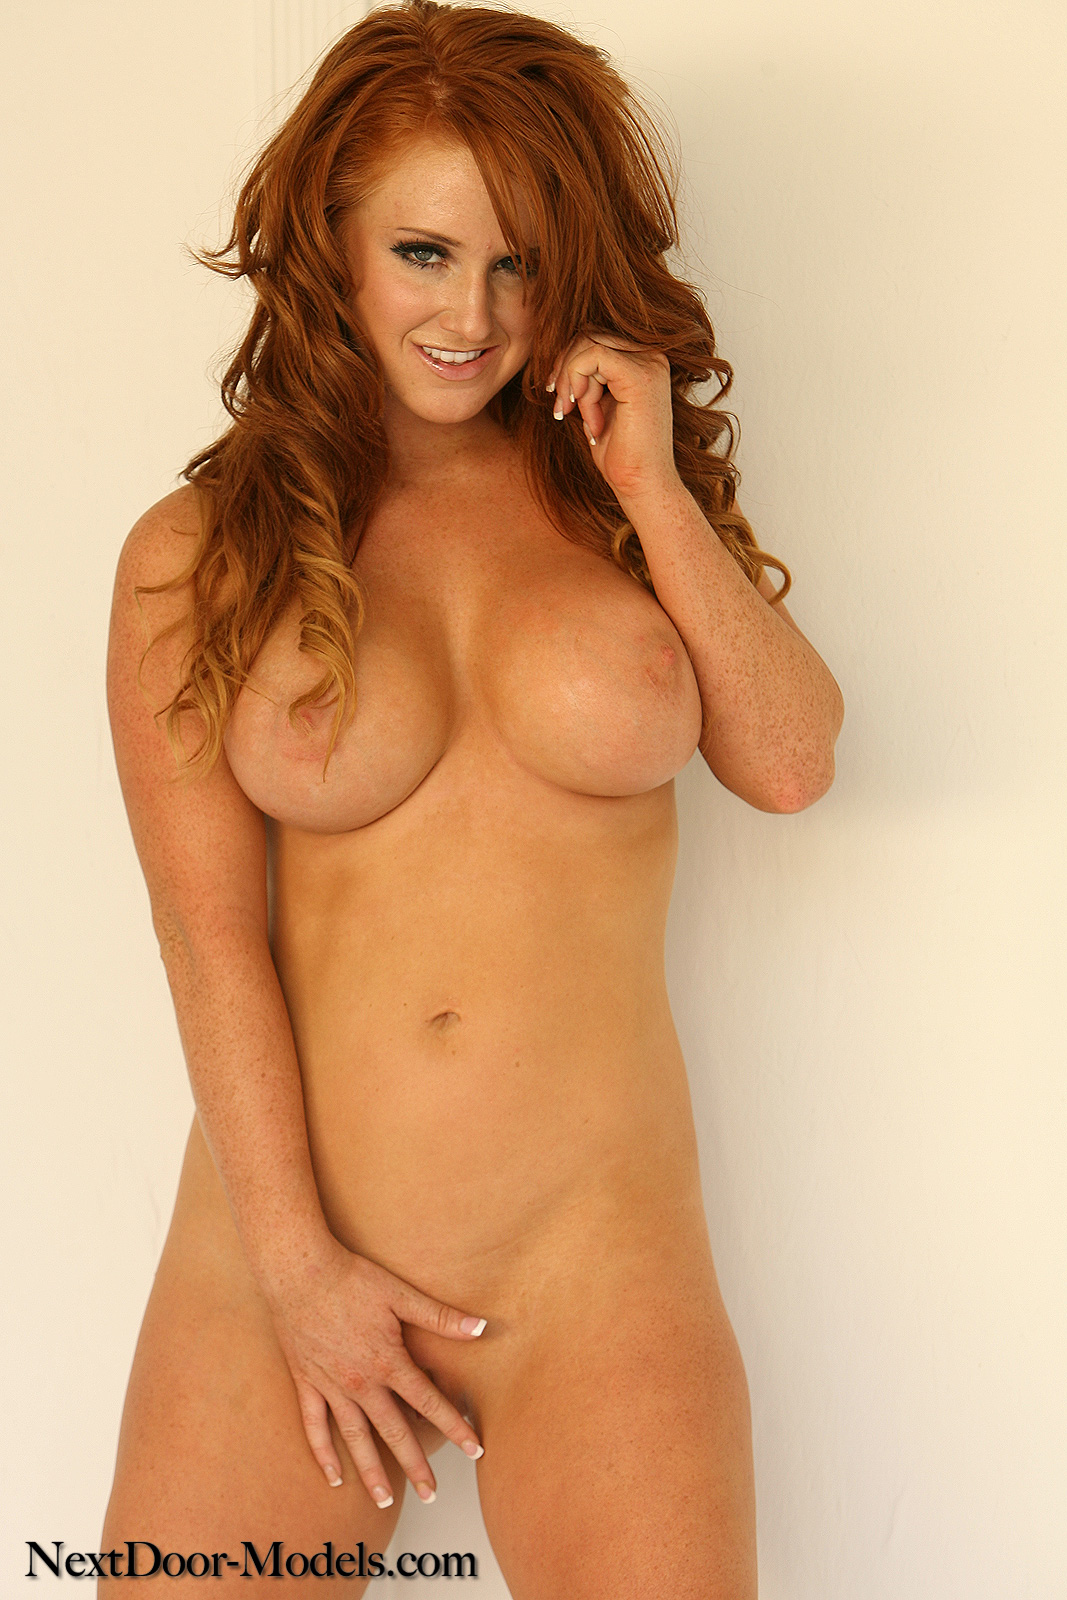 Are not Hot naked red headed girls